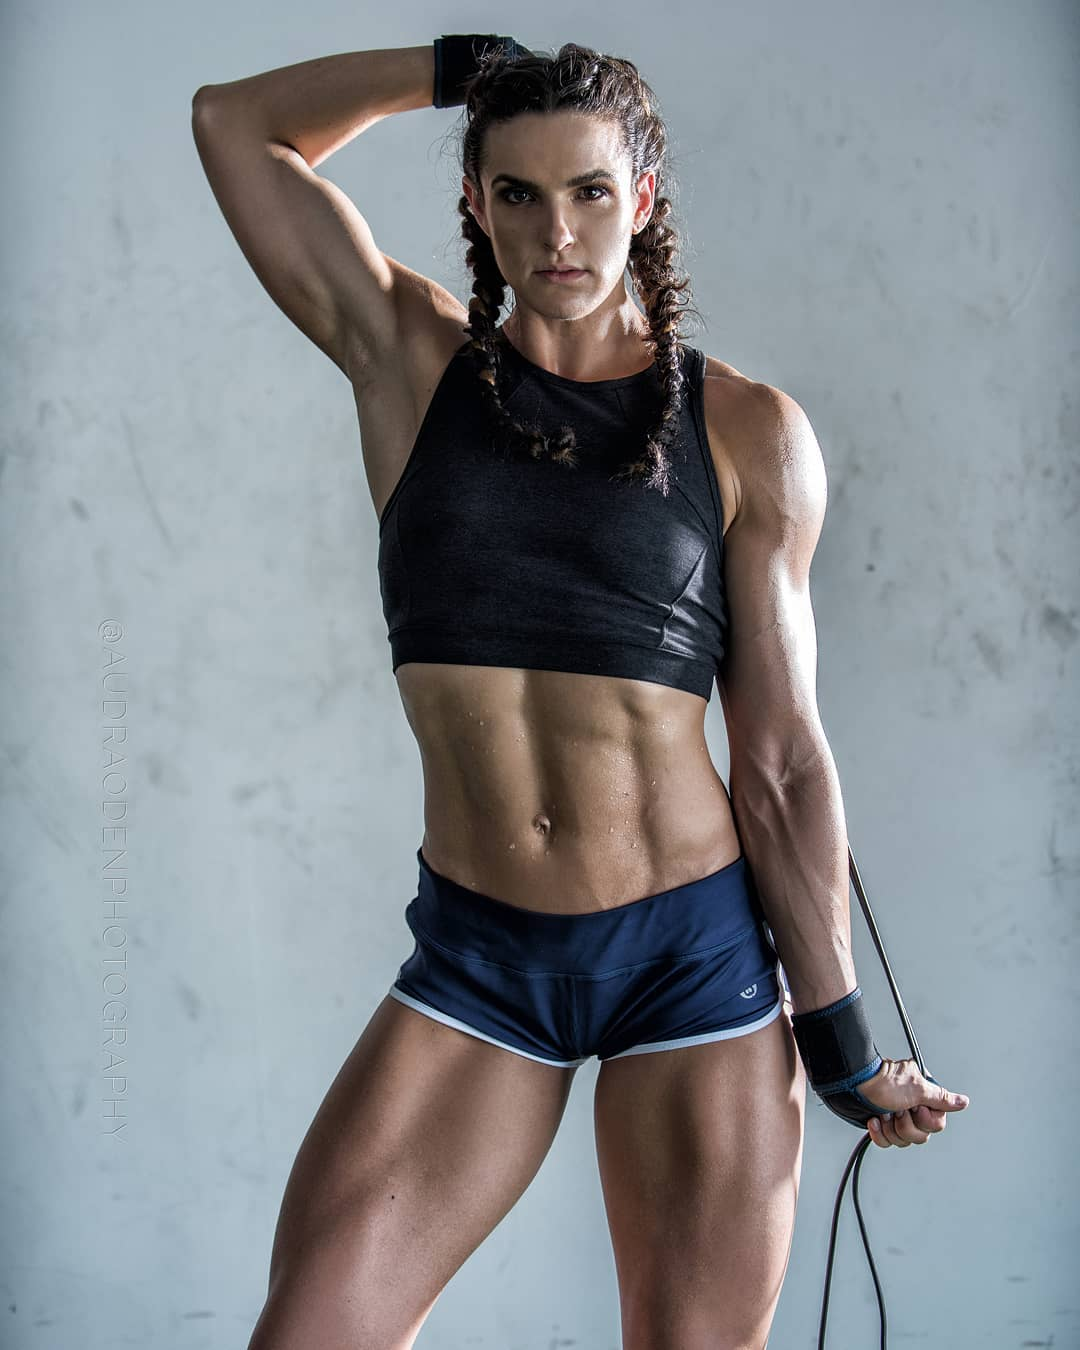 Ripped female abs photos — pic 5